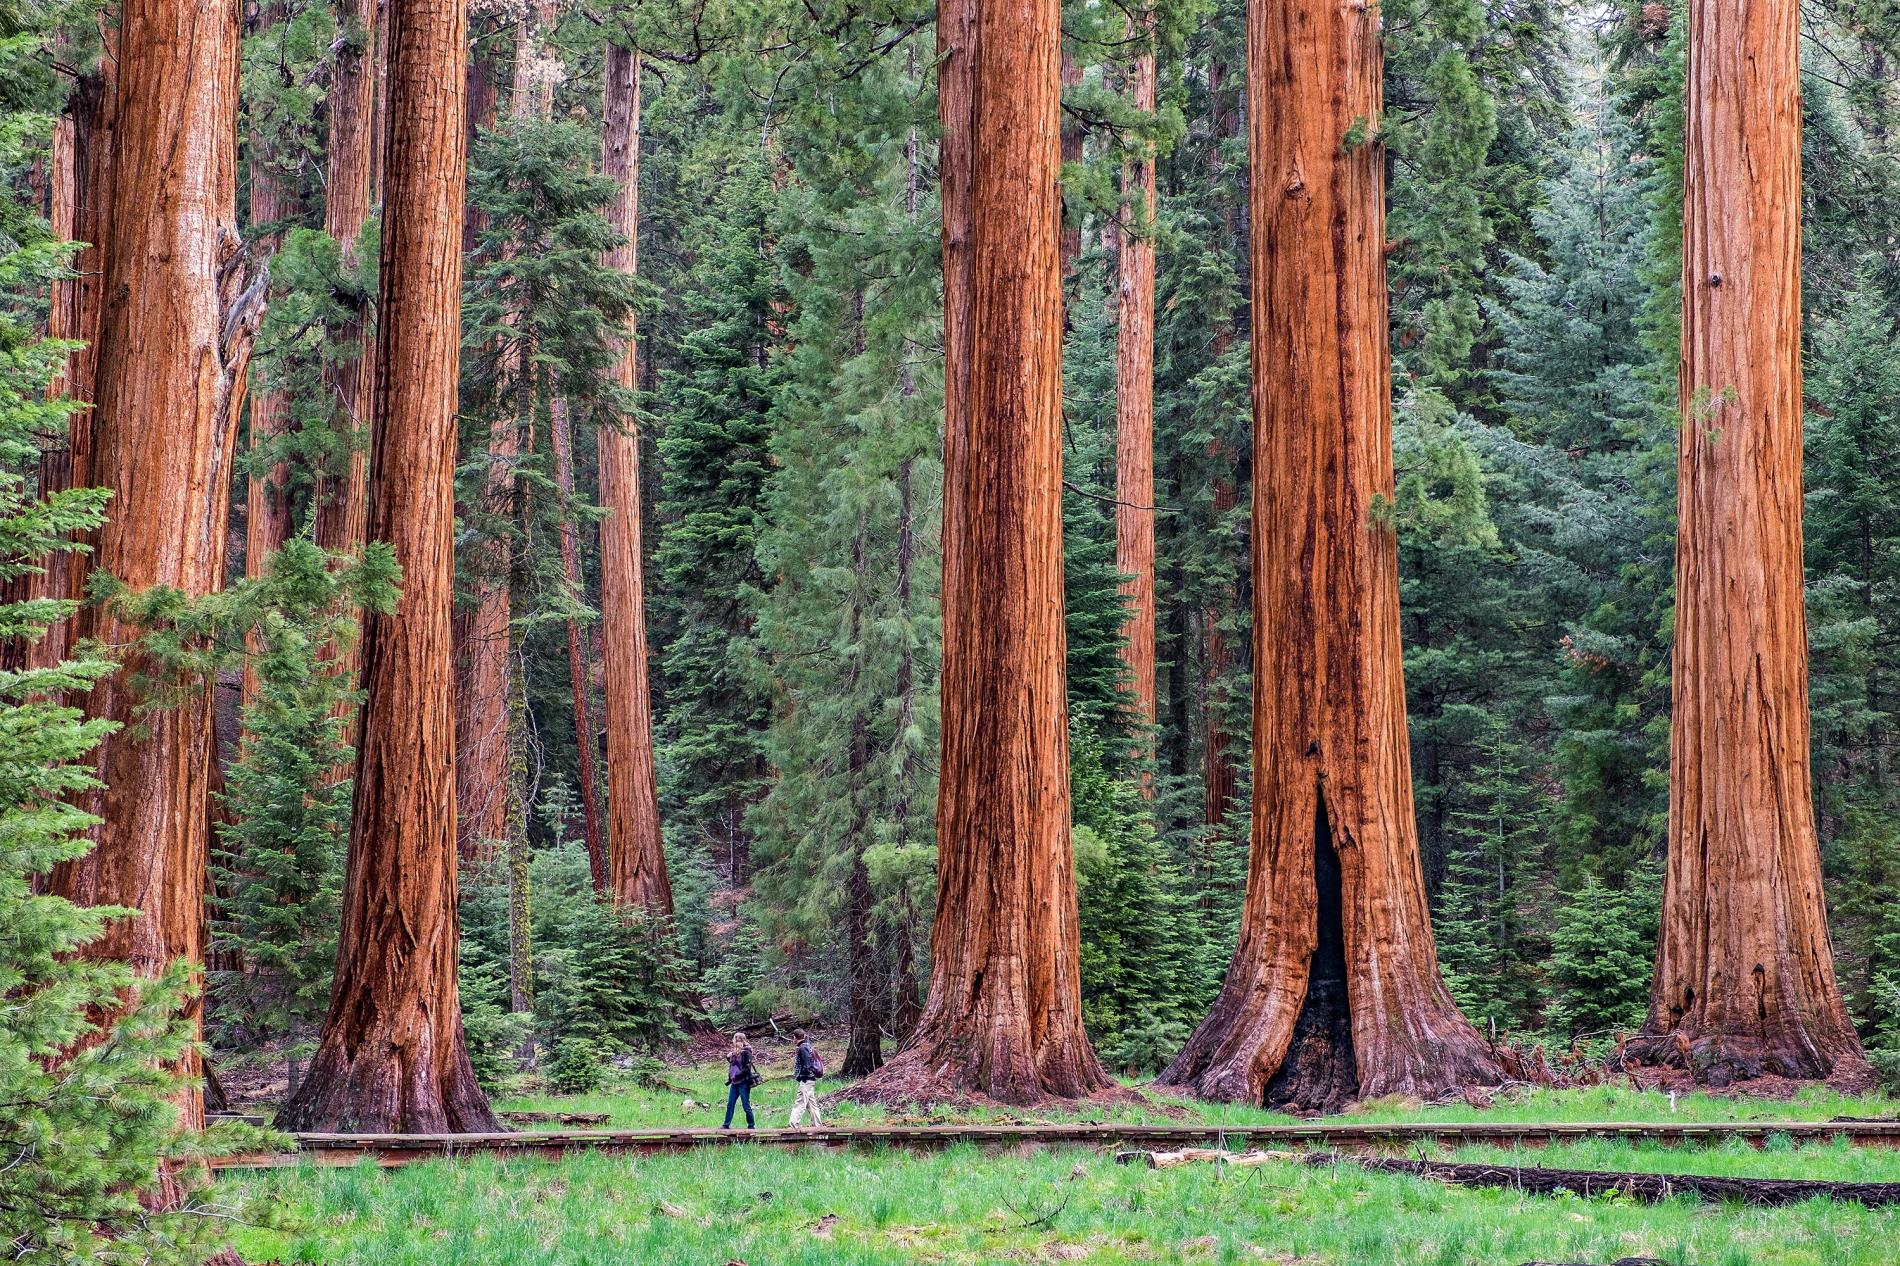 giant-tree-trail-sequoia-national-park.adapt.1900.1.jpg